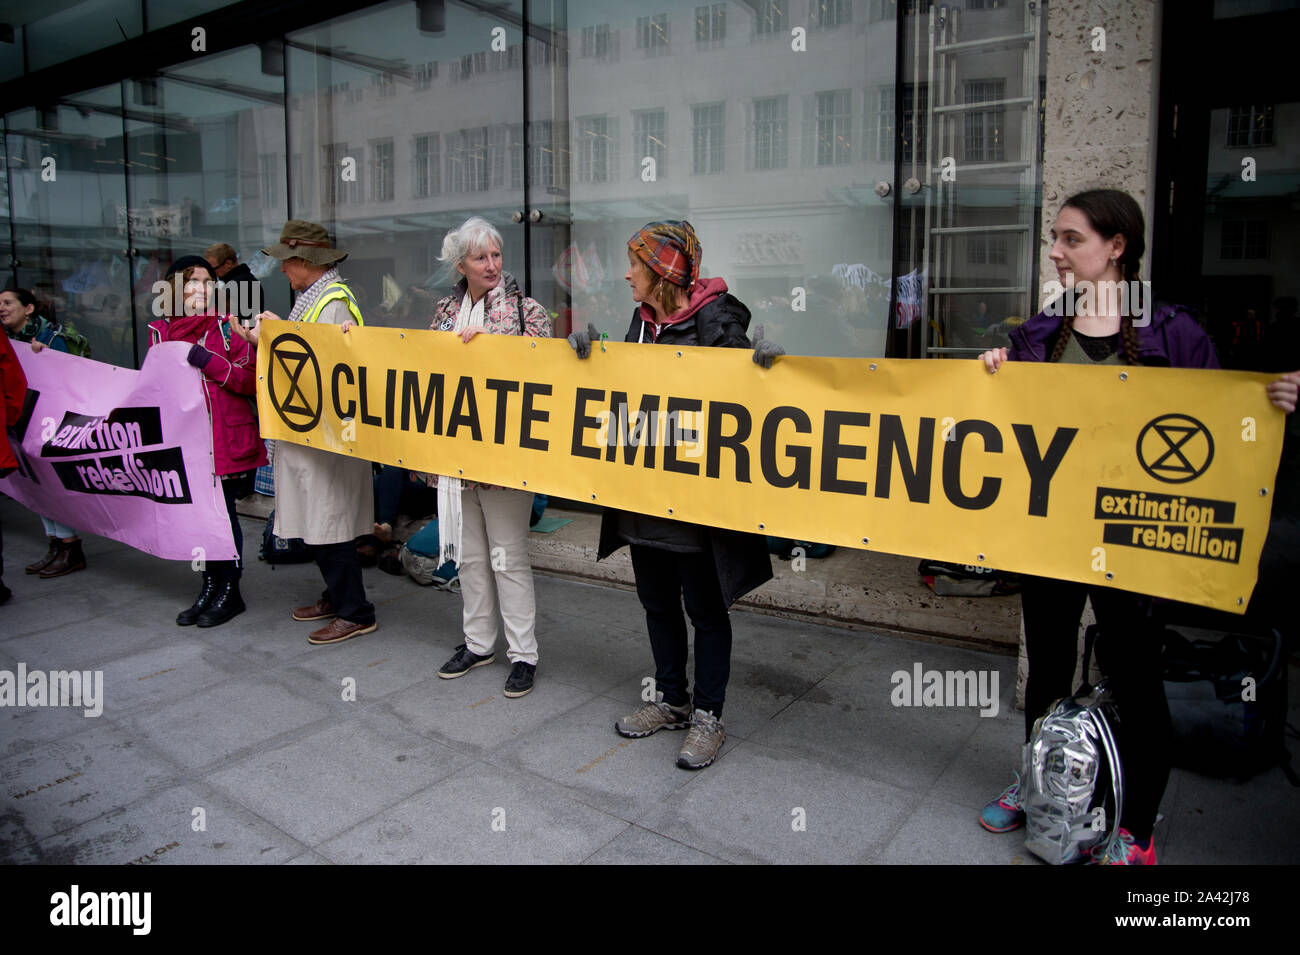 Extinction Rebellion,  London, October 11th 2019. Occupying the BBC, Oxford Circus. Protesters with a banner saying 'Climate Emergency'. Stock Photo